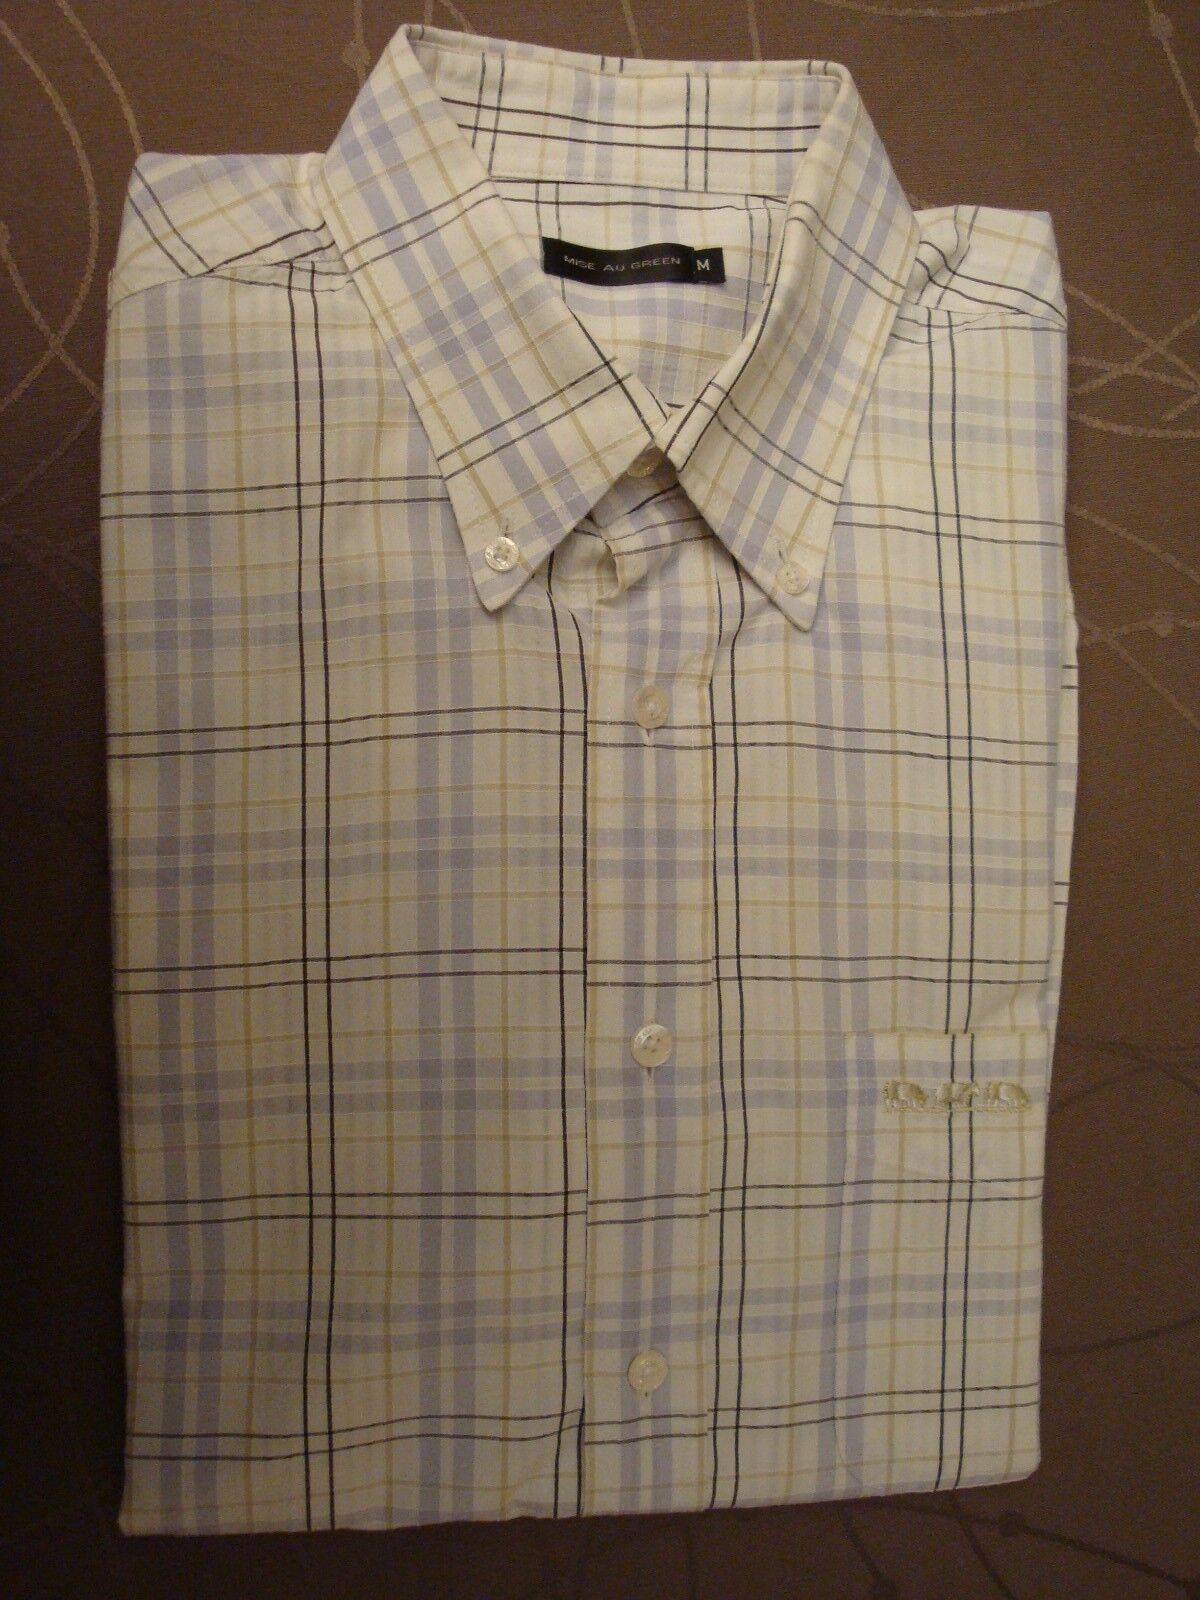 Chemise mise au green - manches courtes - taille m